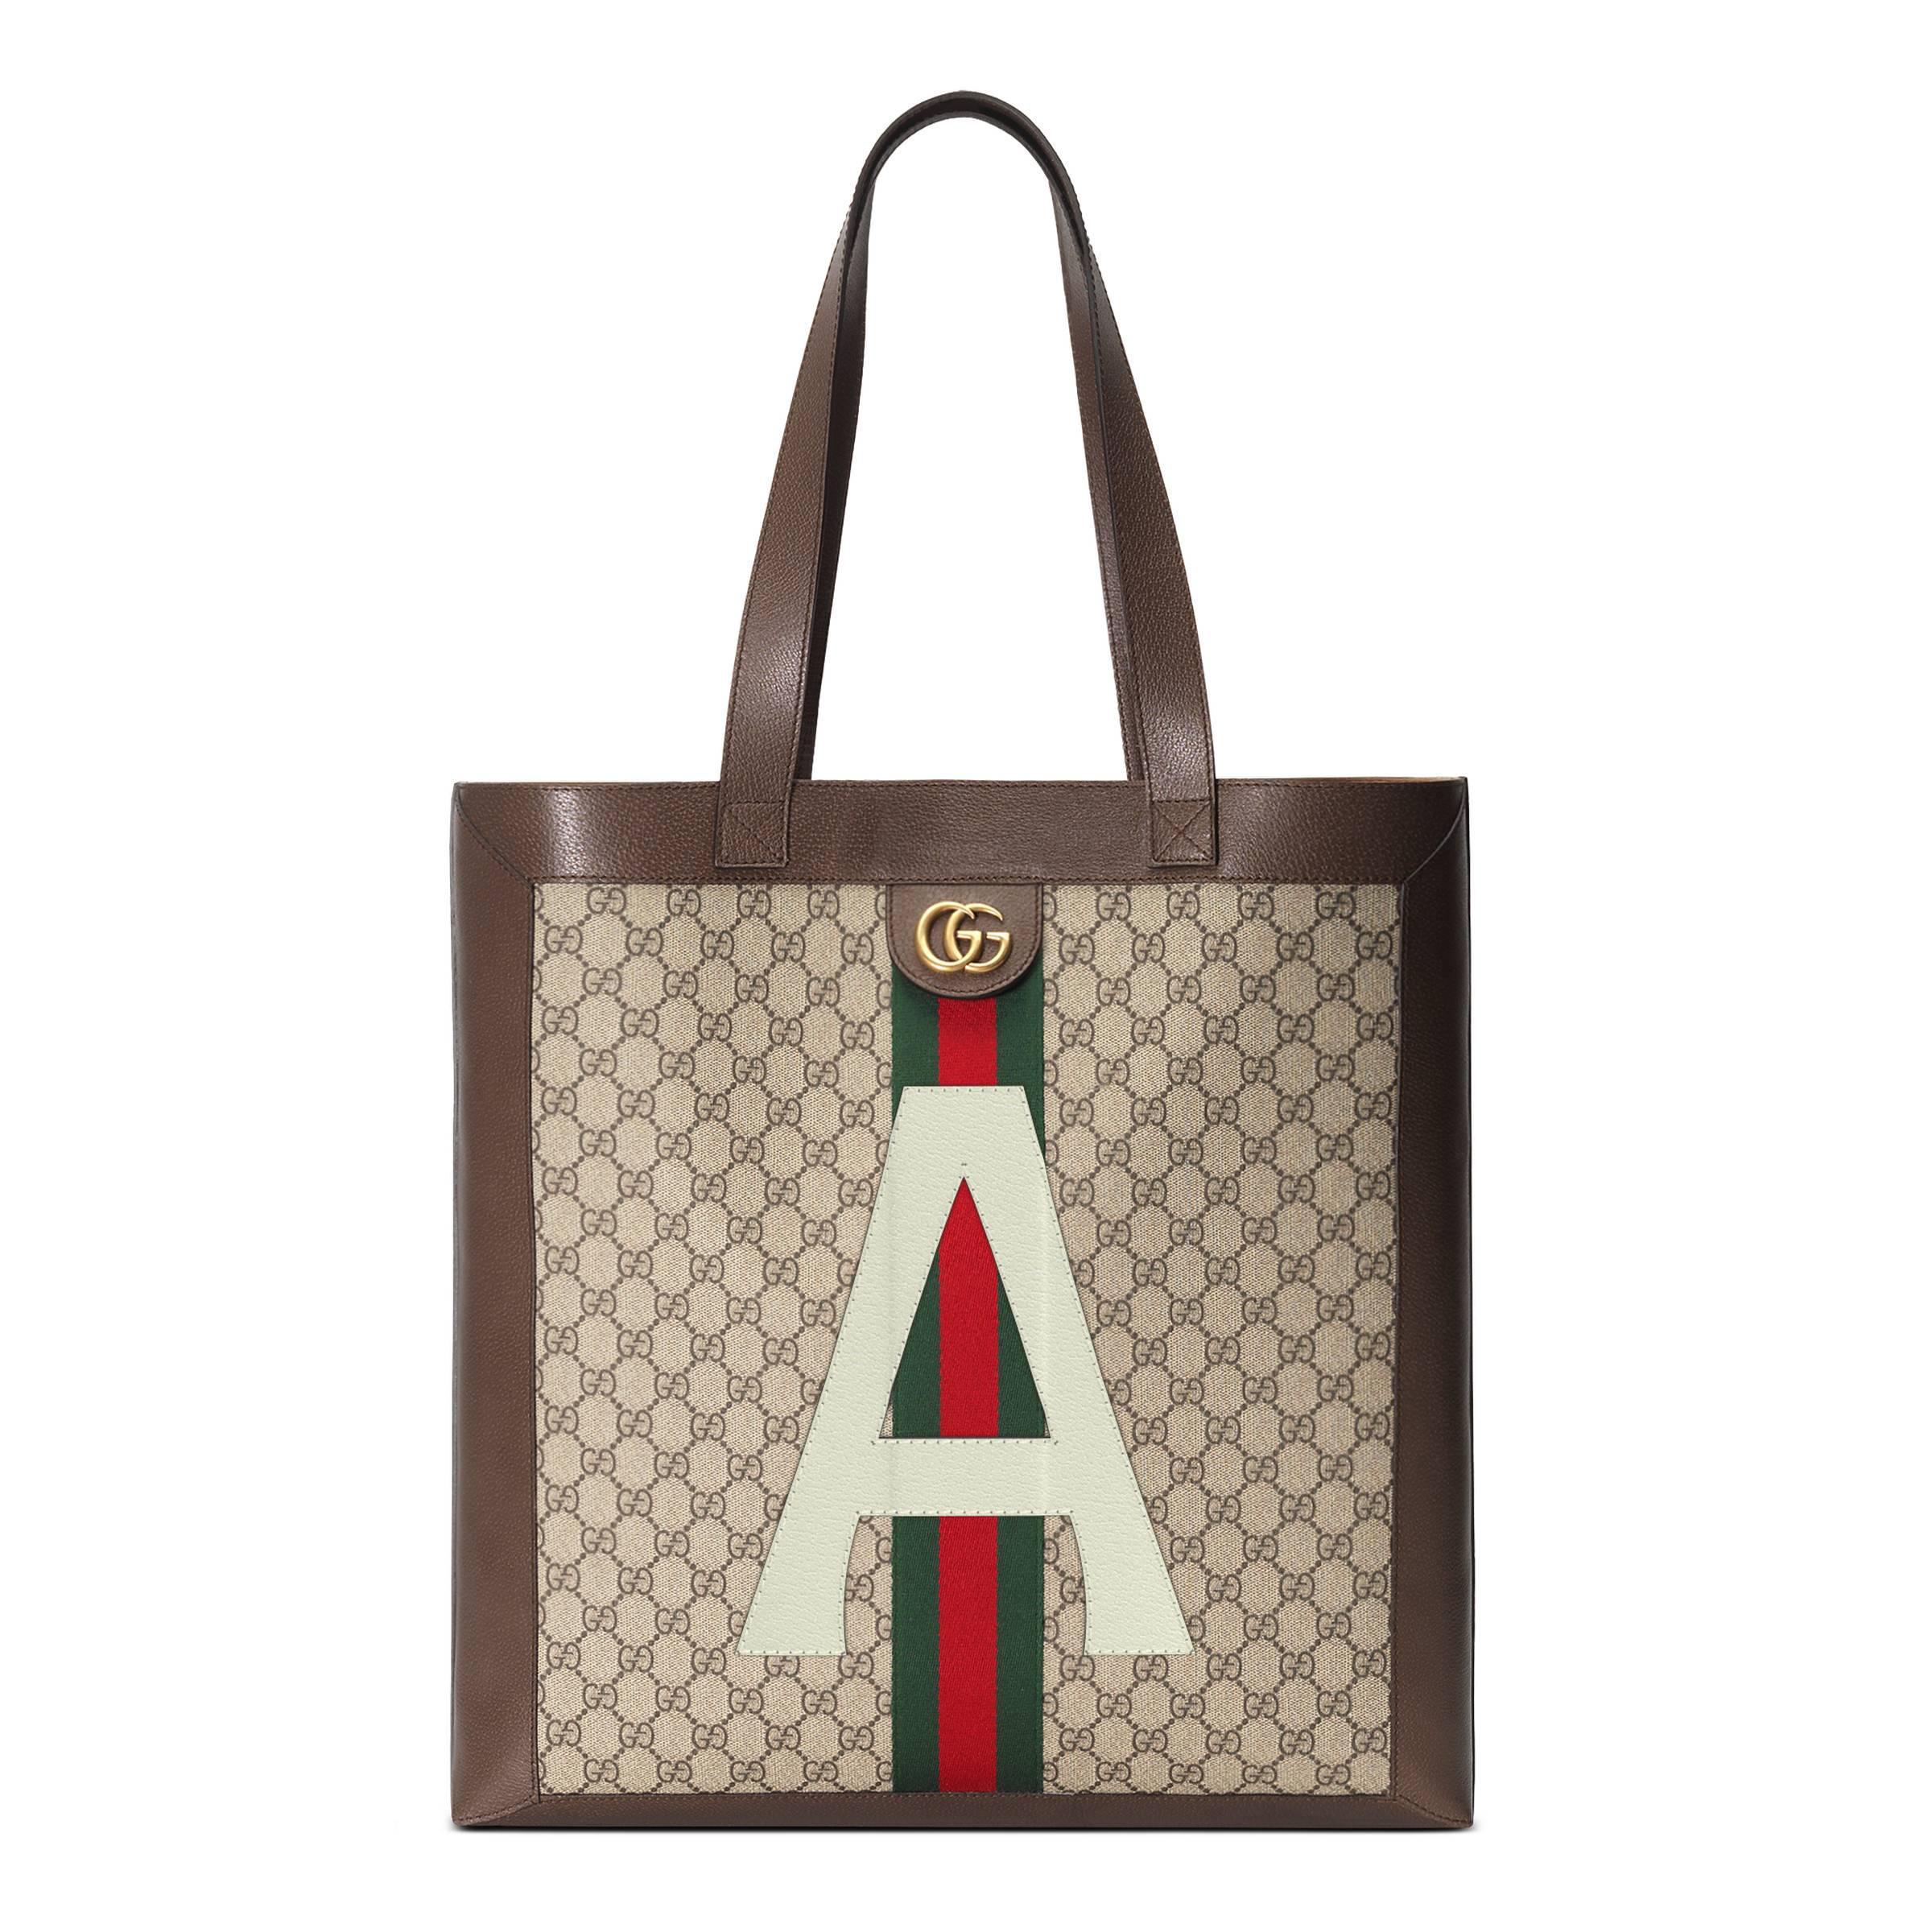 656417d60a29 Gucci. Women's Diy Ophidia GG Supreme Large Tote